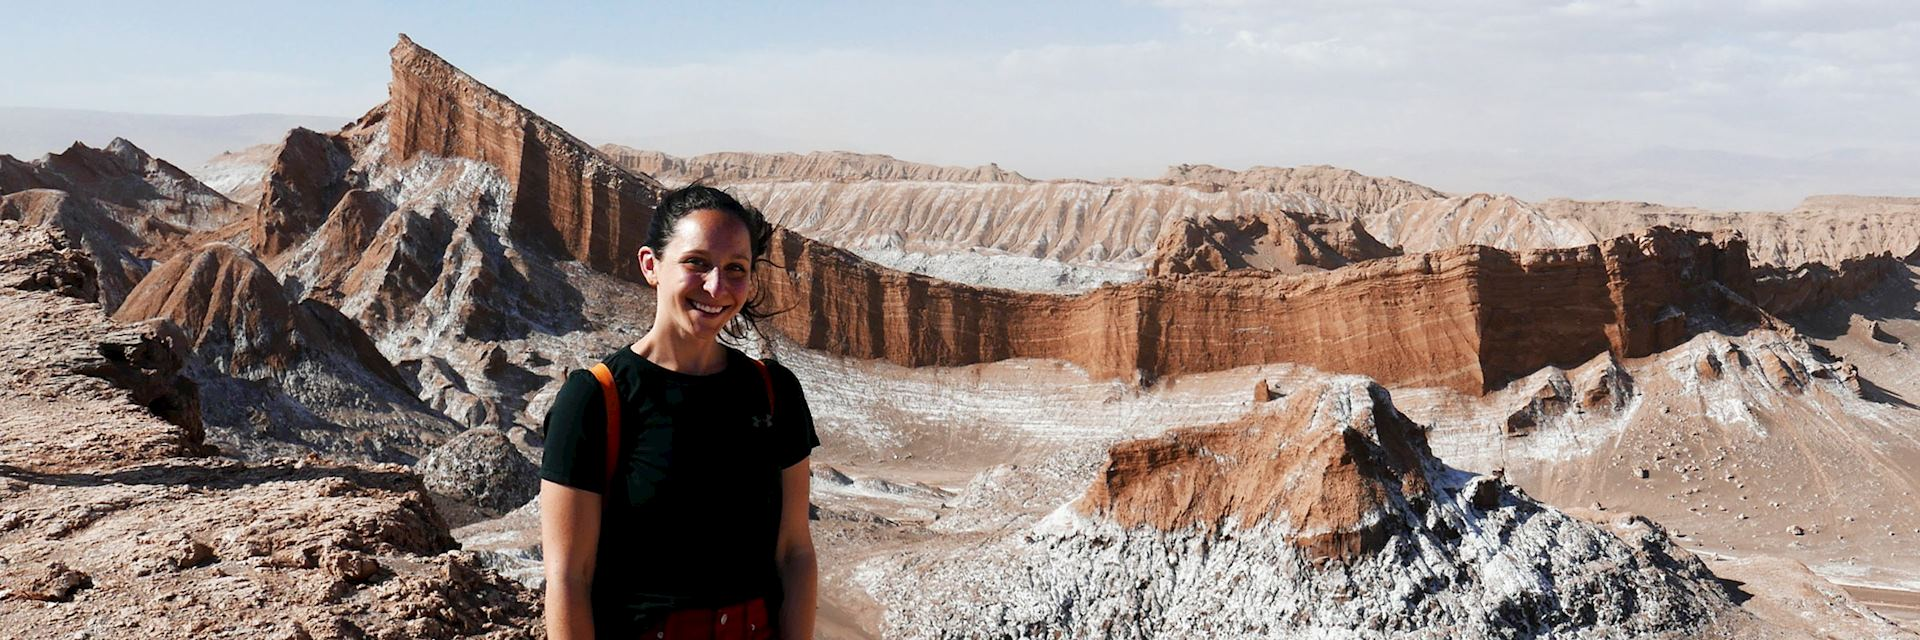 Olivia in Moon Valley, Atacama Desert, Chile